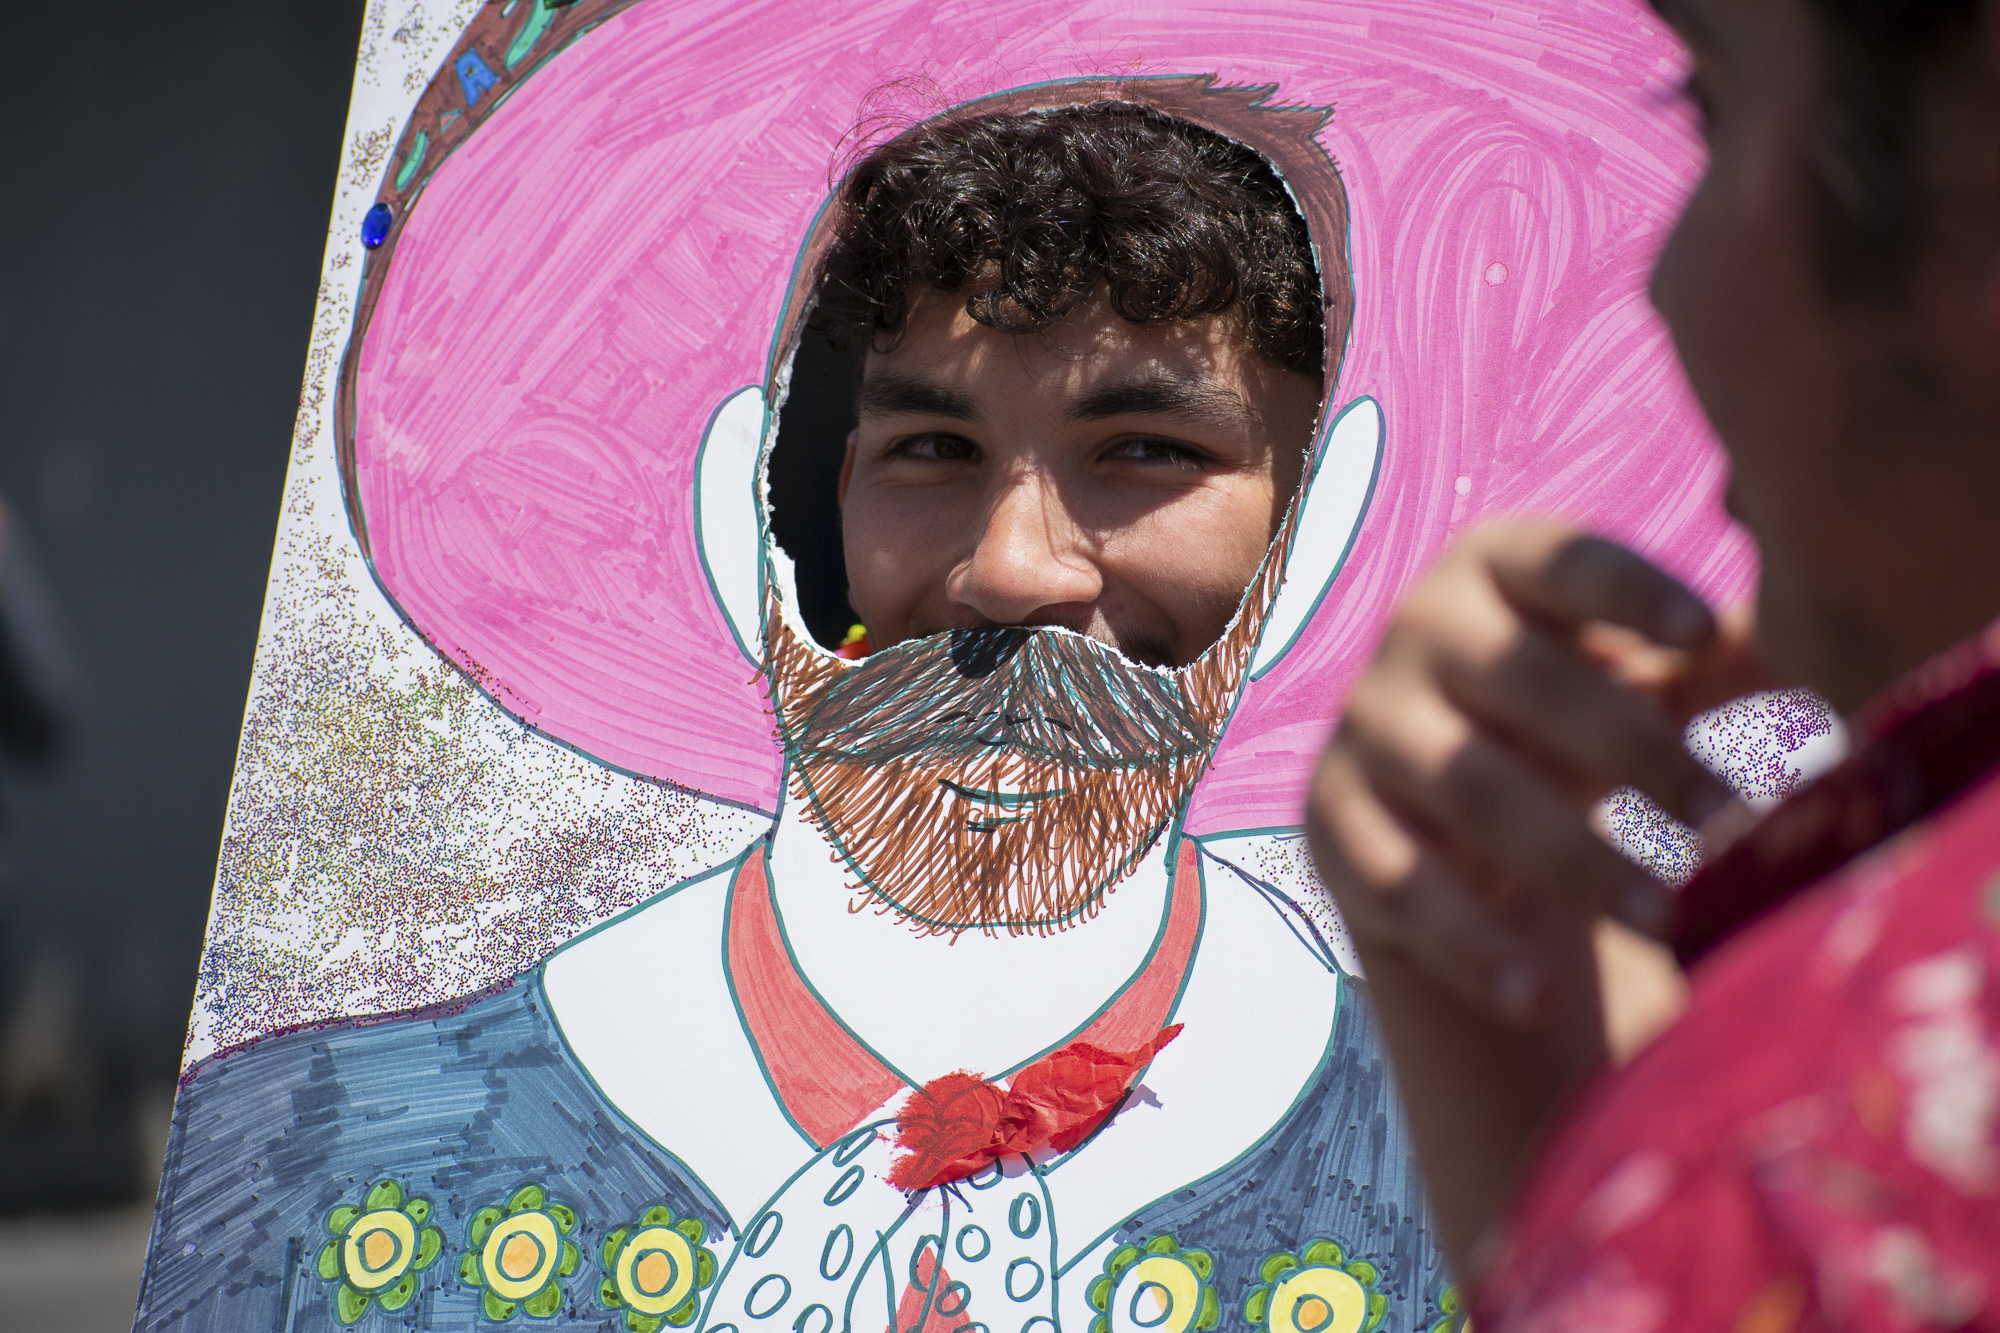 Christian Escovar poses for a friend in front of the Adelante Club's booth on the quad at Santa Monica College during Club Row on Thursday, April 26, 2018 in Santa Monica, California. With over 60 clubs in attendance, the day is meant to encourage clubs to showcase what they've been doing over the semester for students. (Ethan Lauren/Corsair Photo)